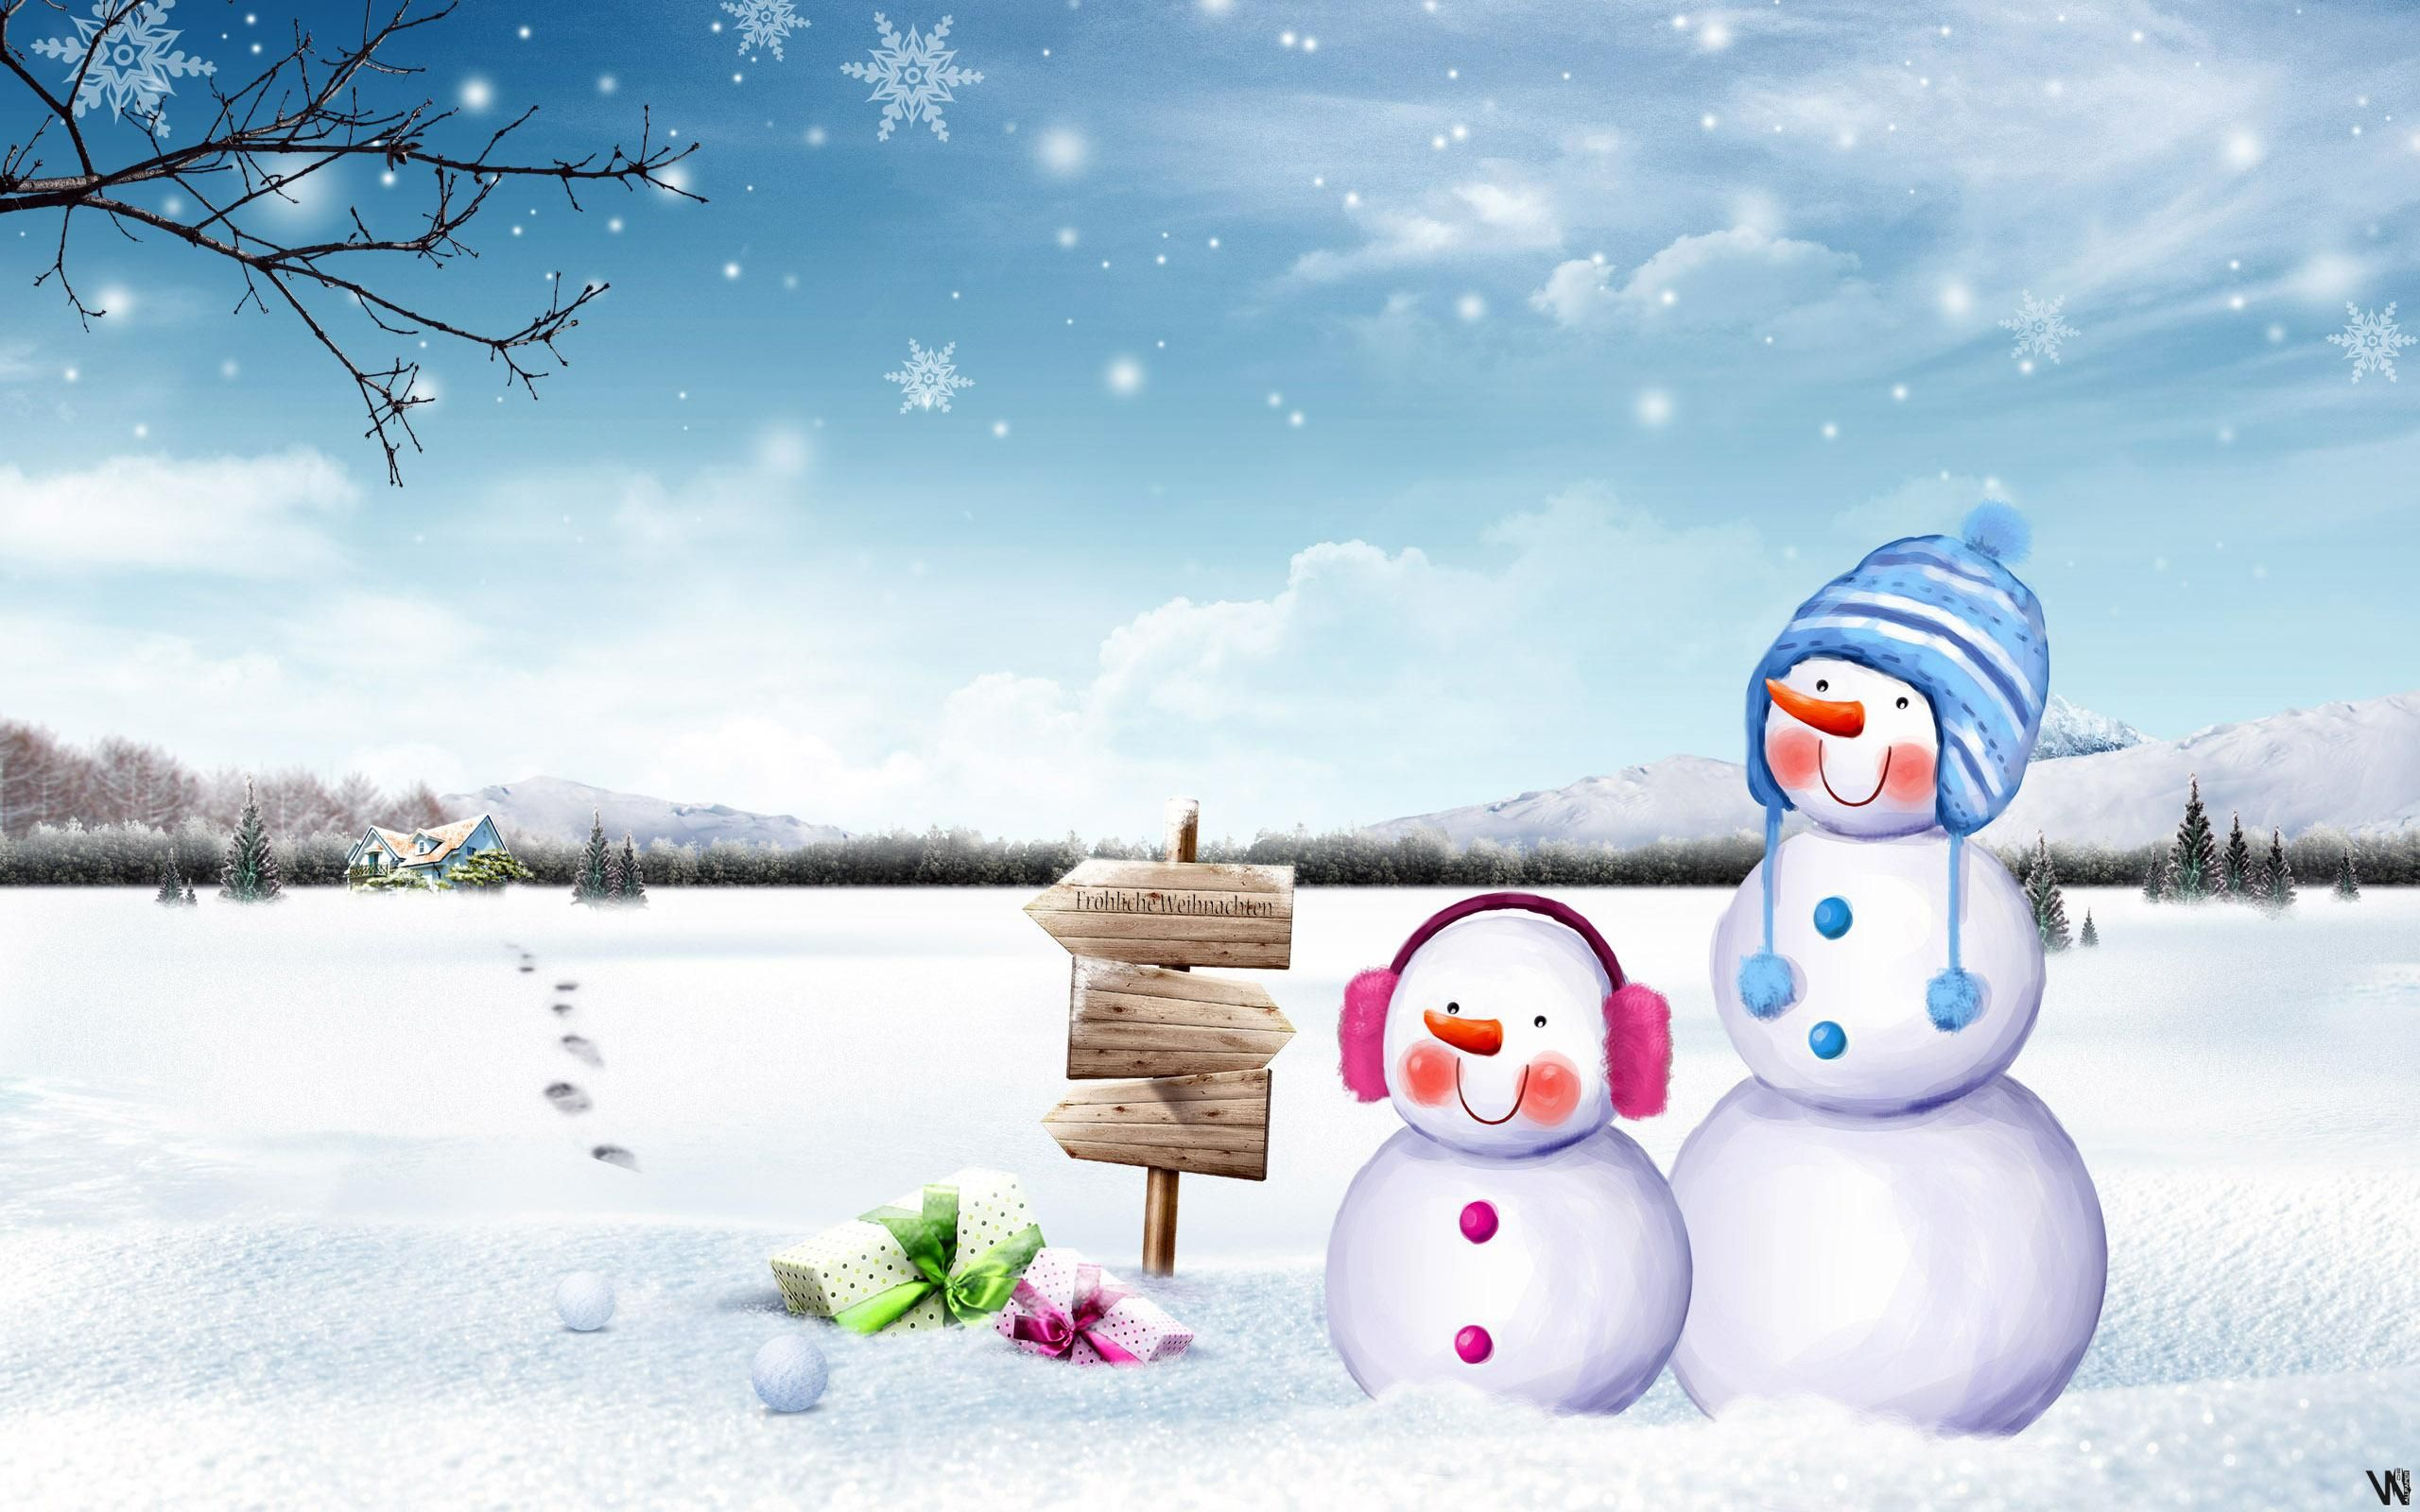 Christmas Backgrounds And Wallpaper Google Search Snowman Wallpaper Winter Wallpaper Christmas Backdrops